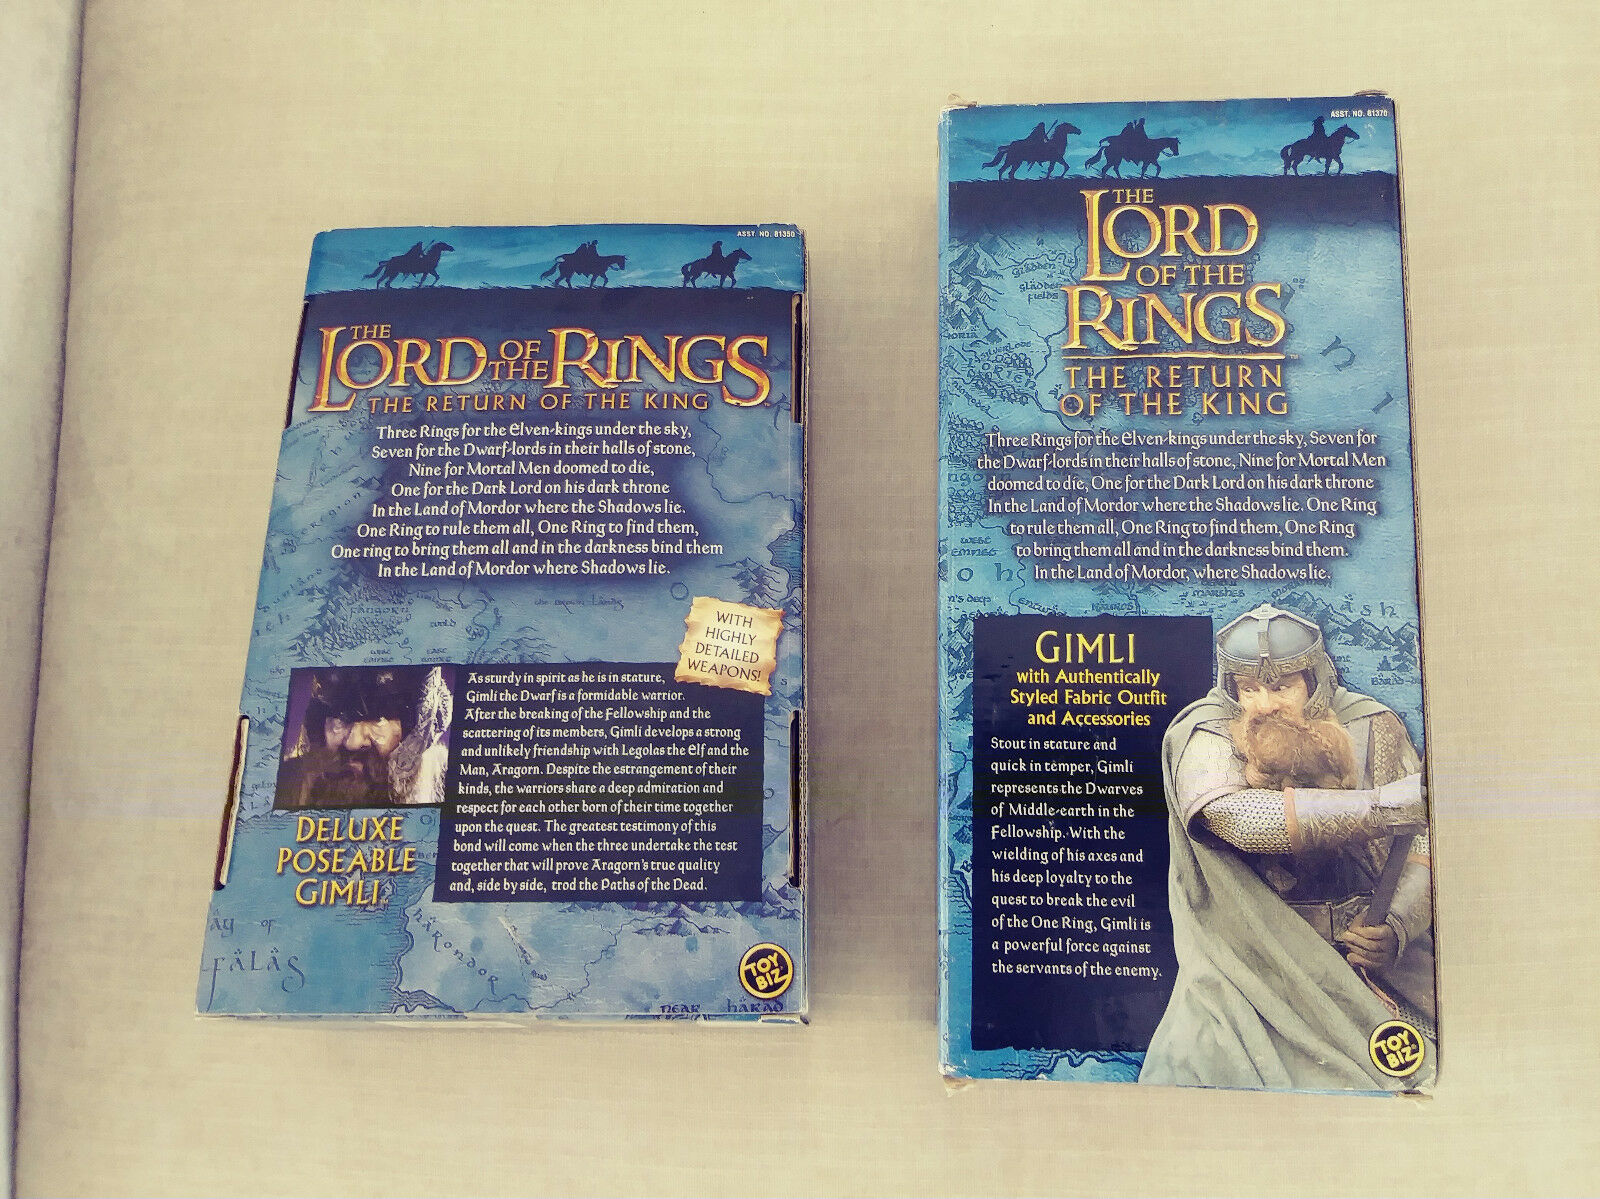 The Lord of the Rings Rings Rings  The Return of the King - Two Action Figure Of Gimli 9f67bd